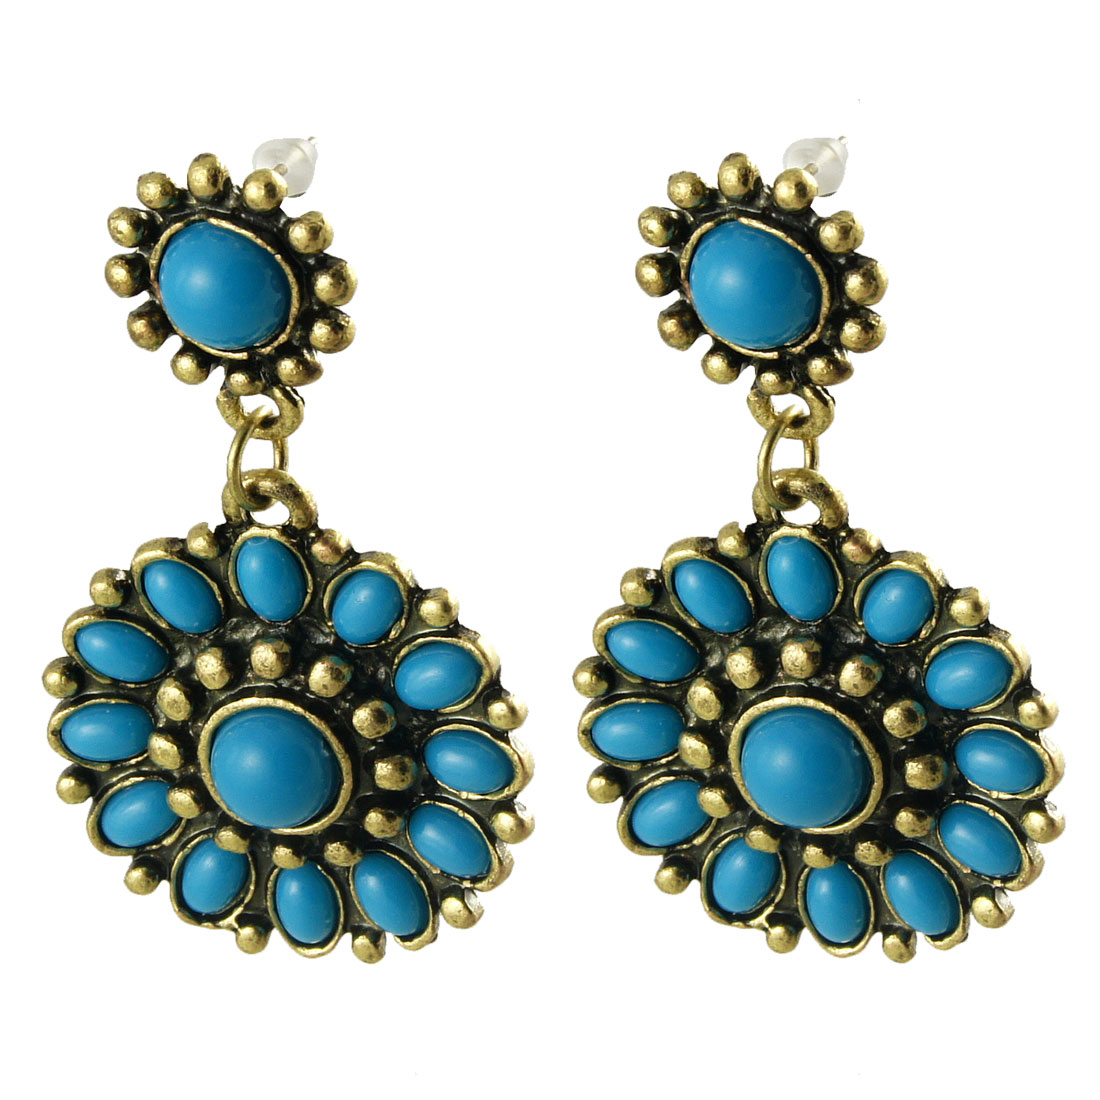 Women Bronze Tone Flower Shape Blue Plastic Beads Decor Pierced Stud Earrings Pair